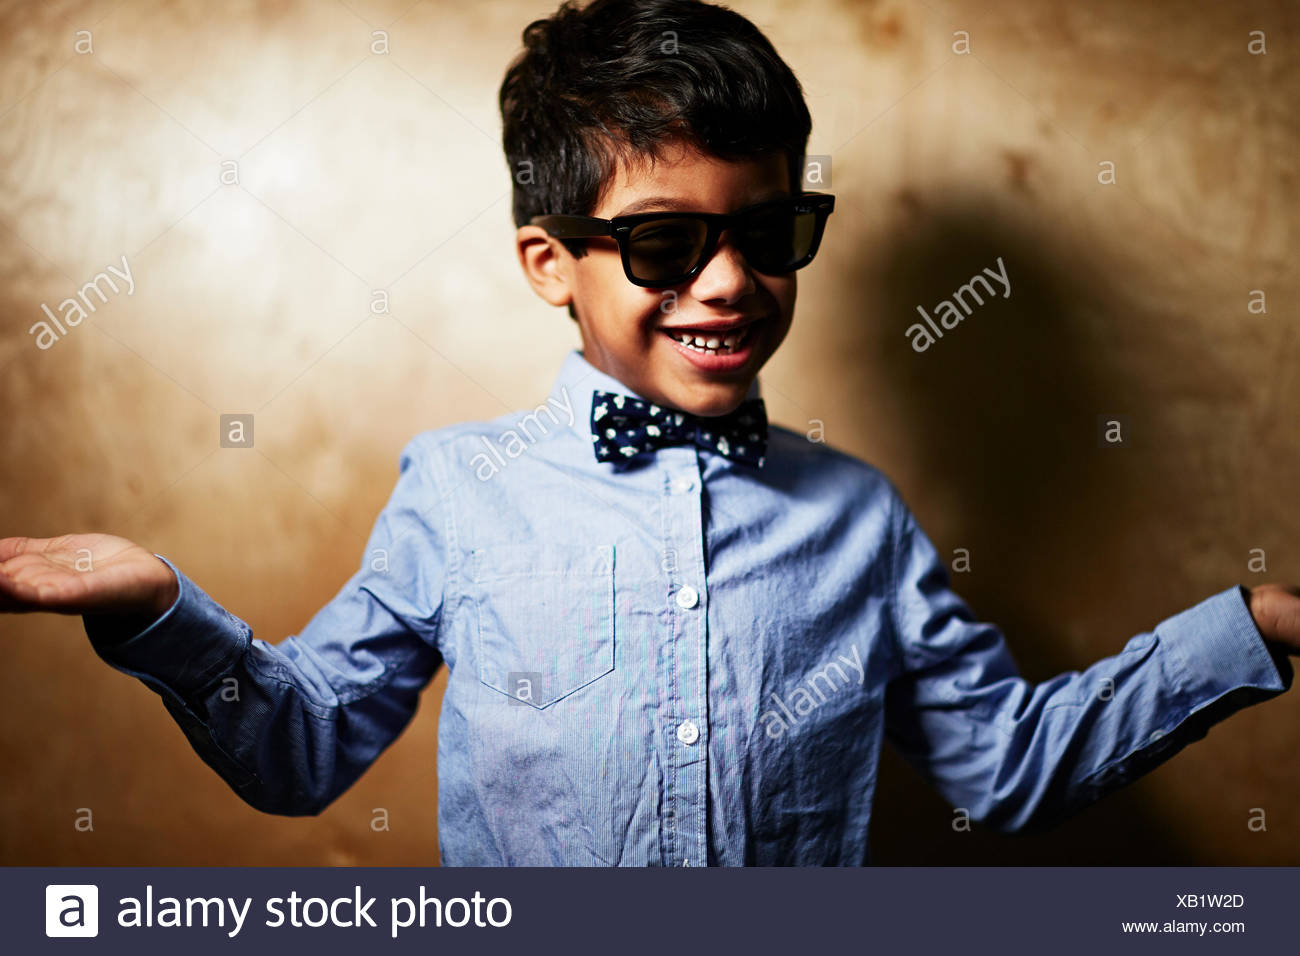 Boy wearing sunglasses and bow tie Stock Photo